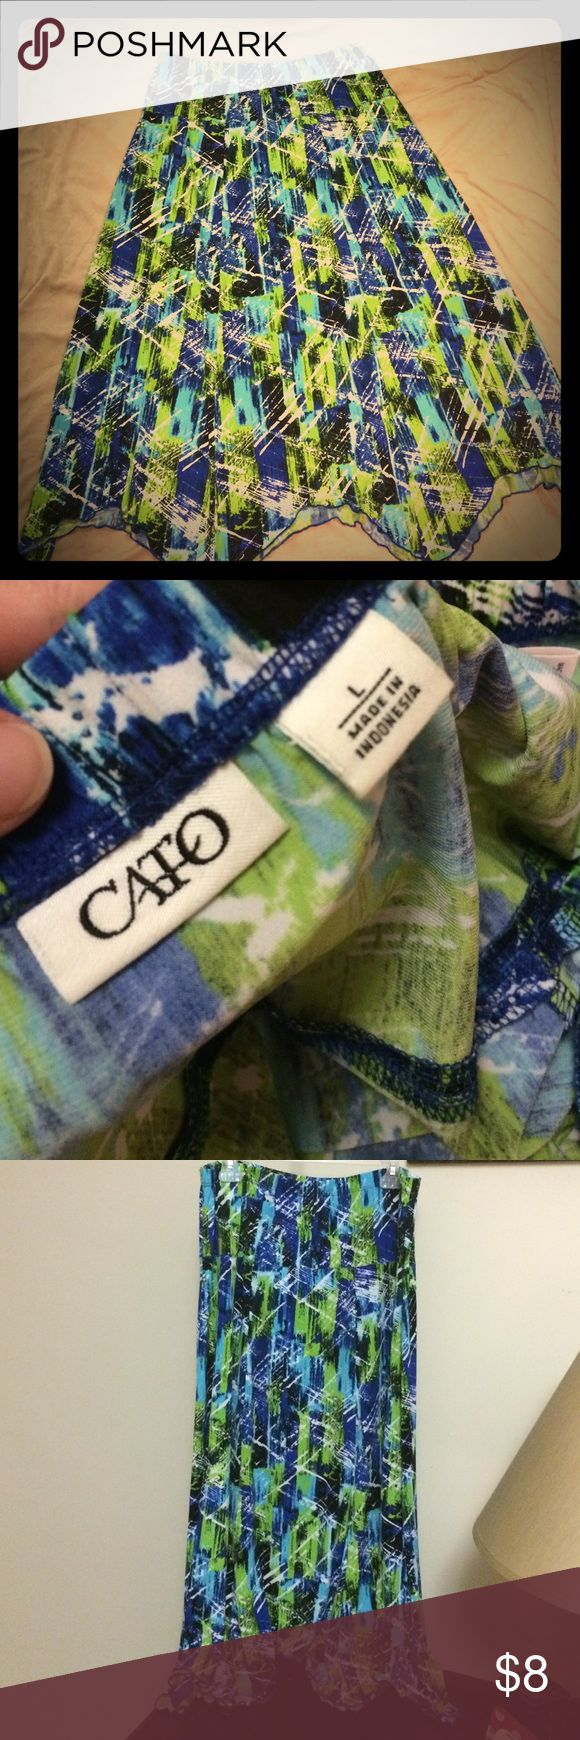 Dressy skirt!💚PRICE DROP!! Adorable bright comfy/stretchy skirt!😉 Cato's brand! Skirts A-Line or Full